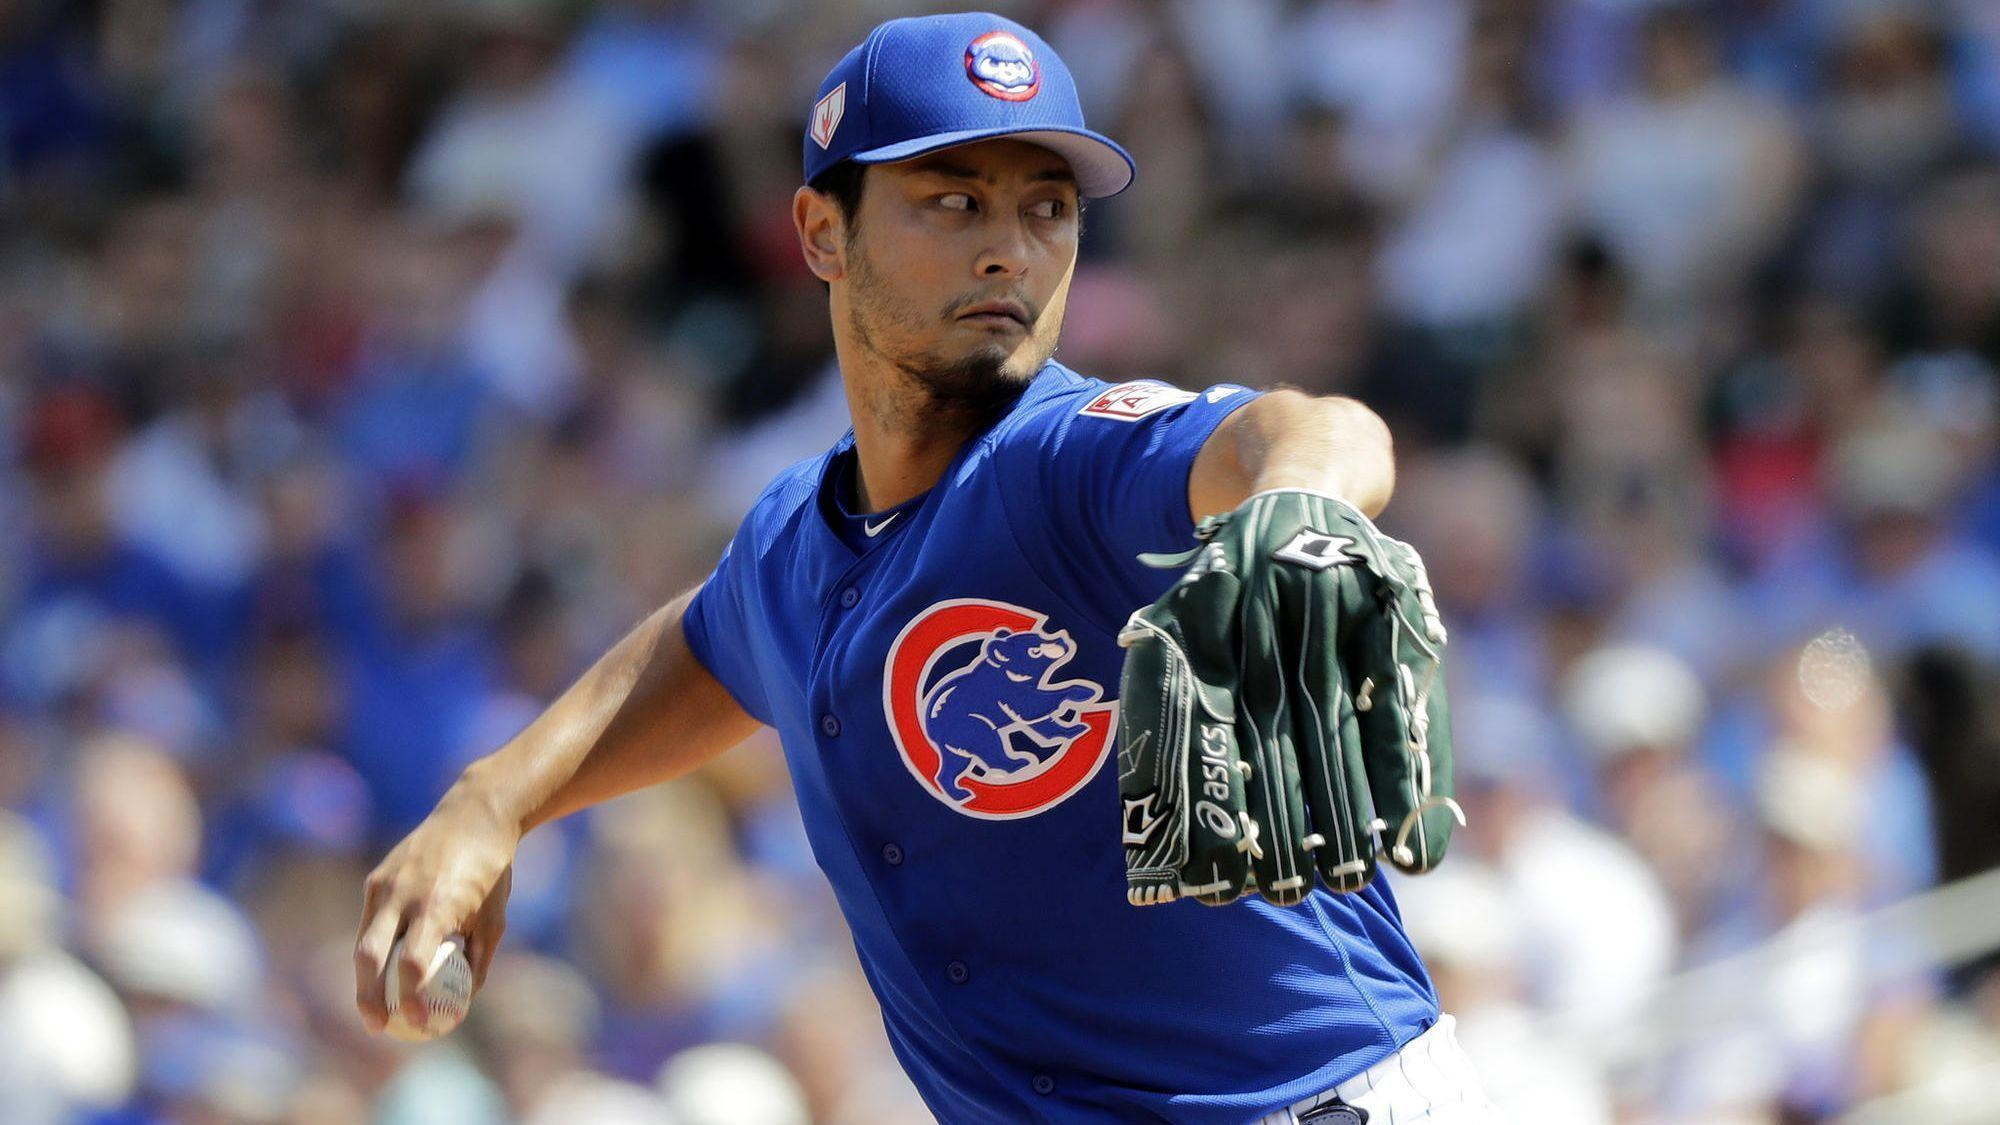 4 takeaways from Cubs spring training, including the mystery of Yu Darvish's 1st start and the unlikelihood of late additions